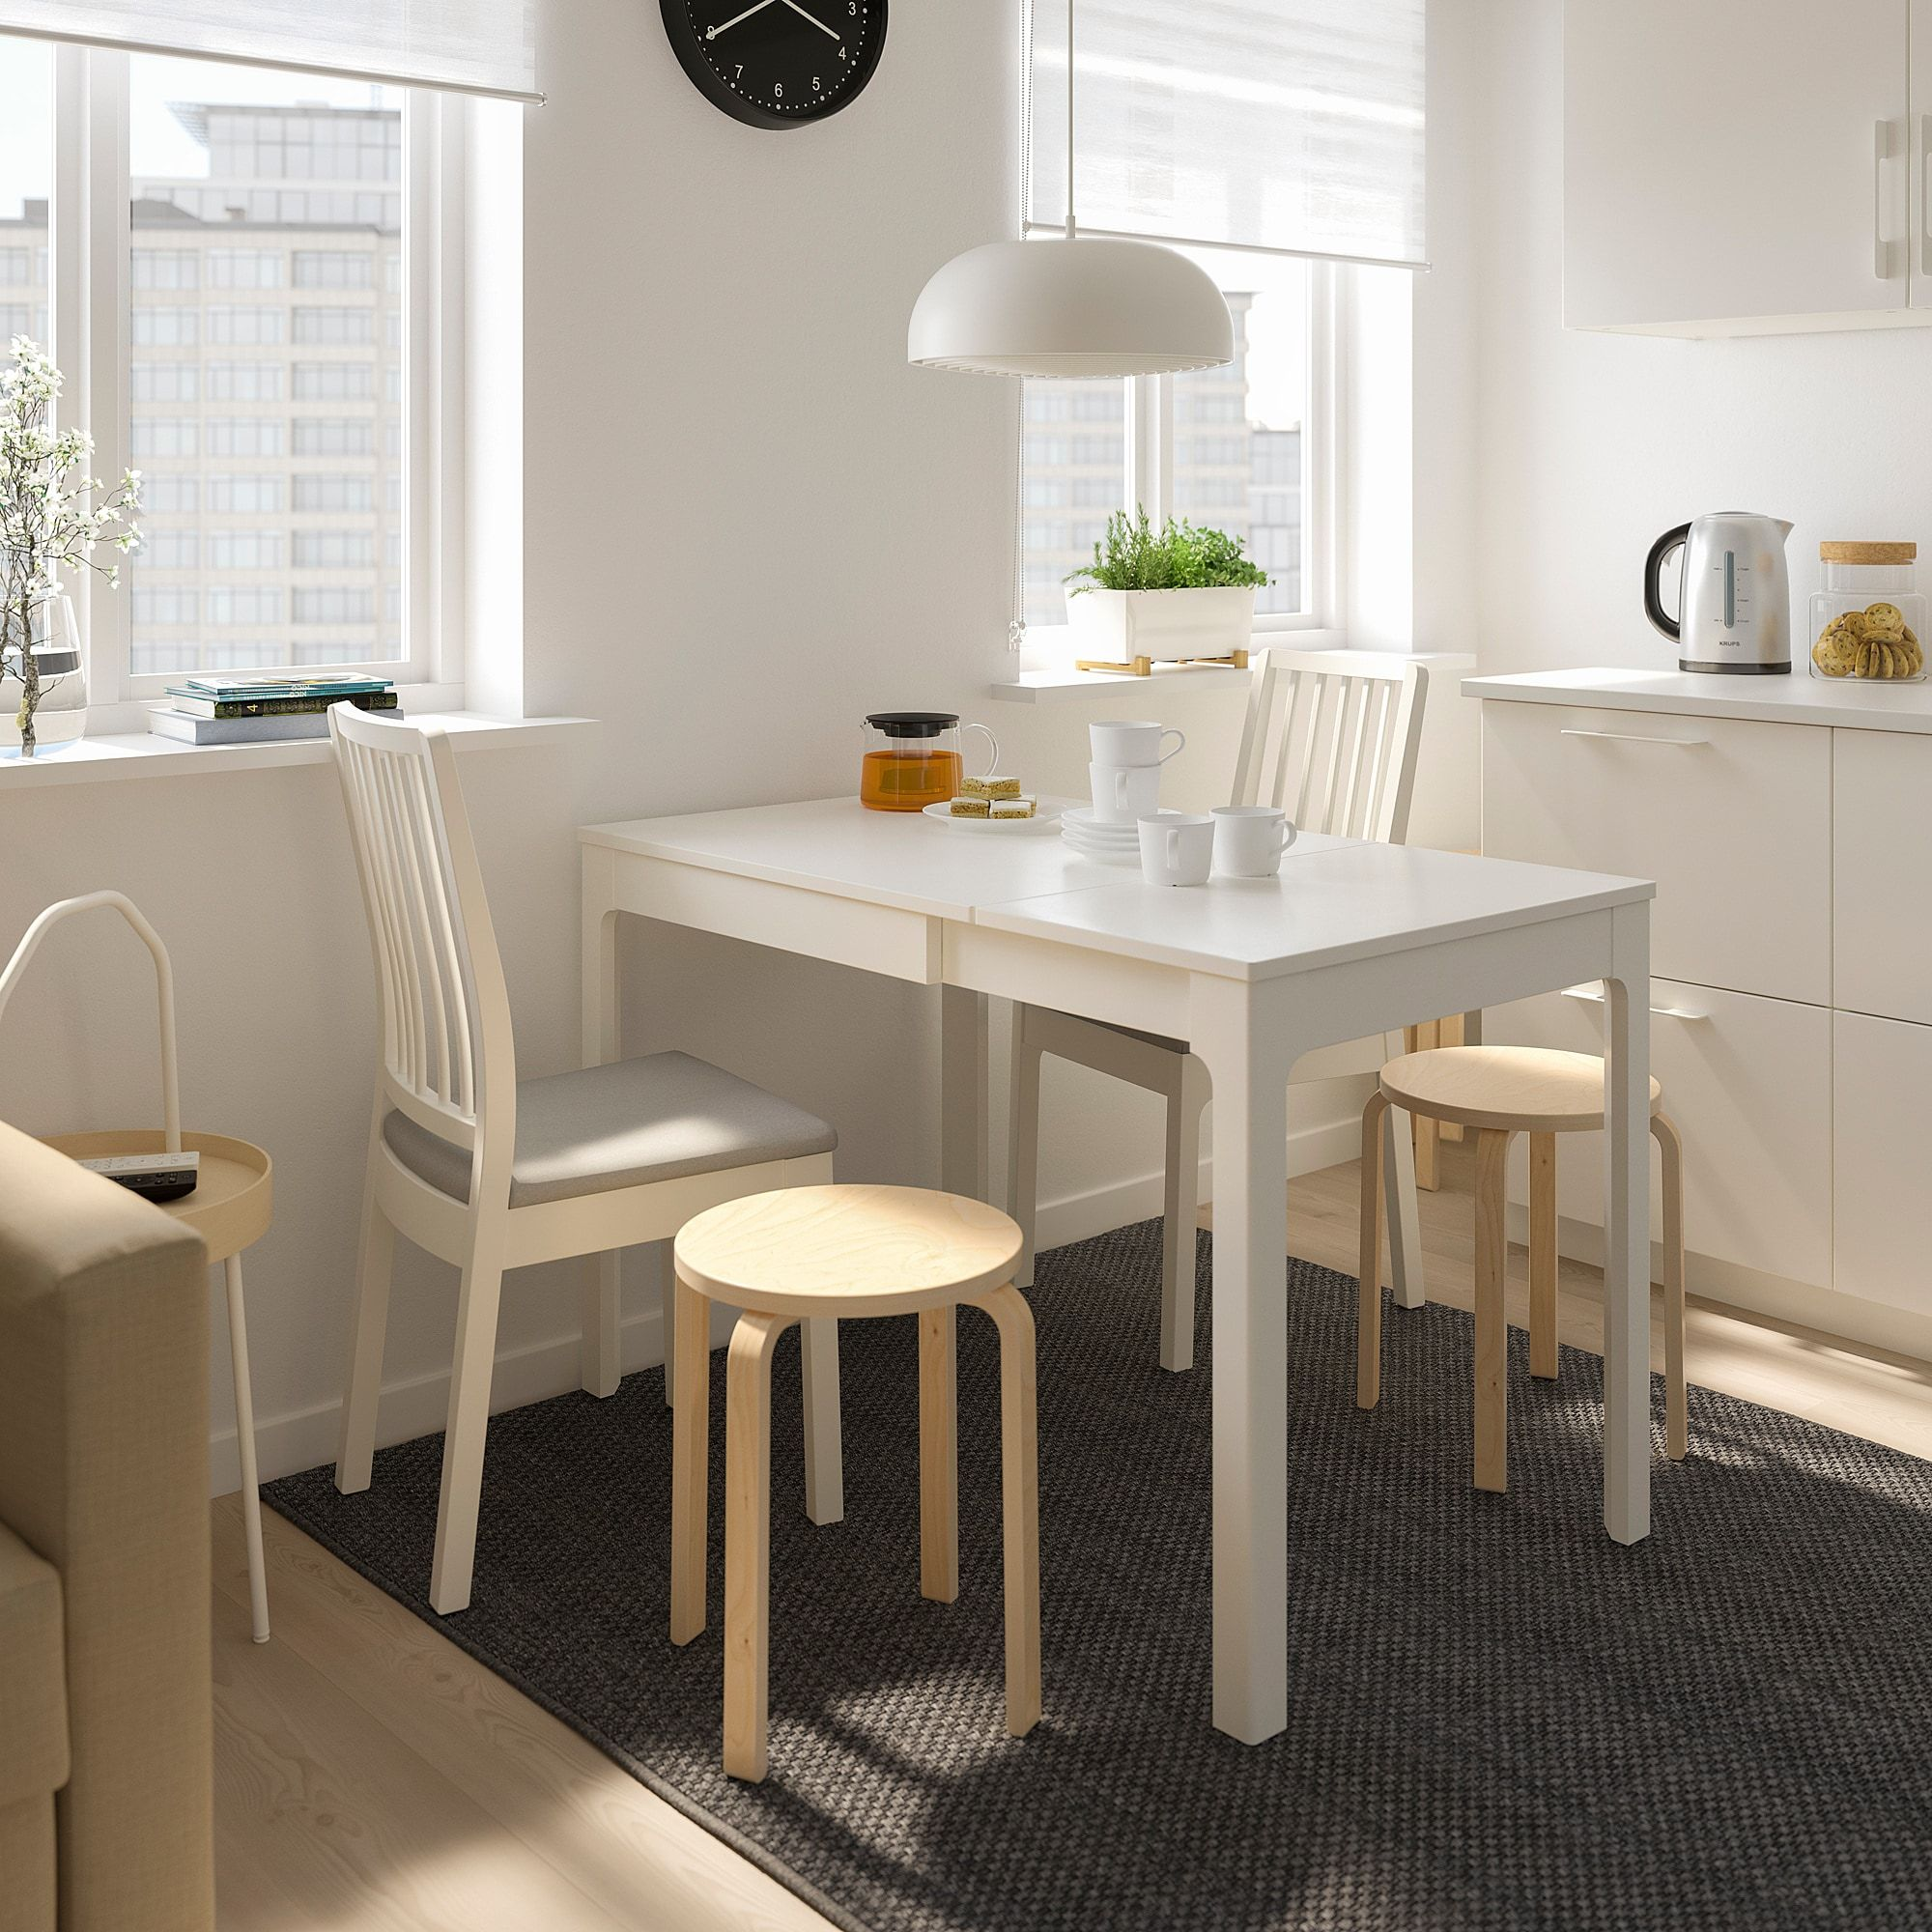 - 10 Best IKEA Kitchen Tables And Dining Sets - Small Space Dining